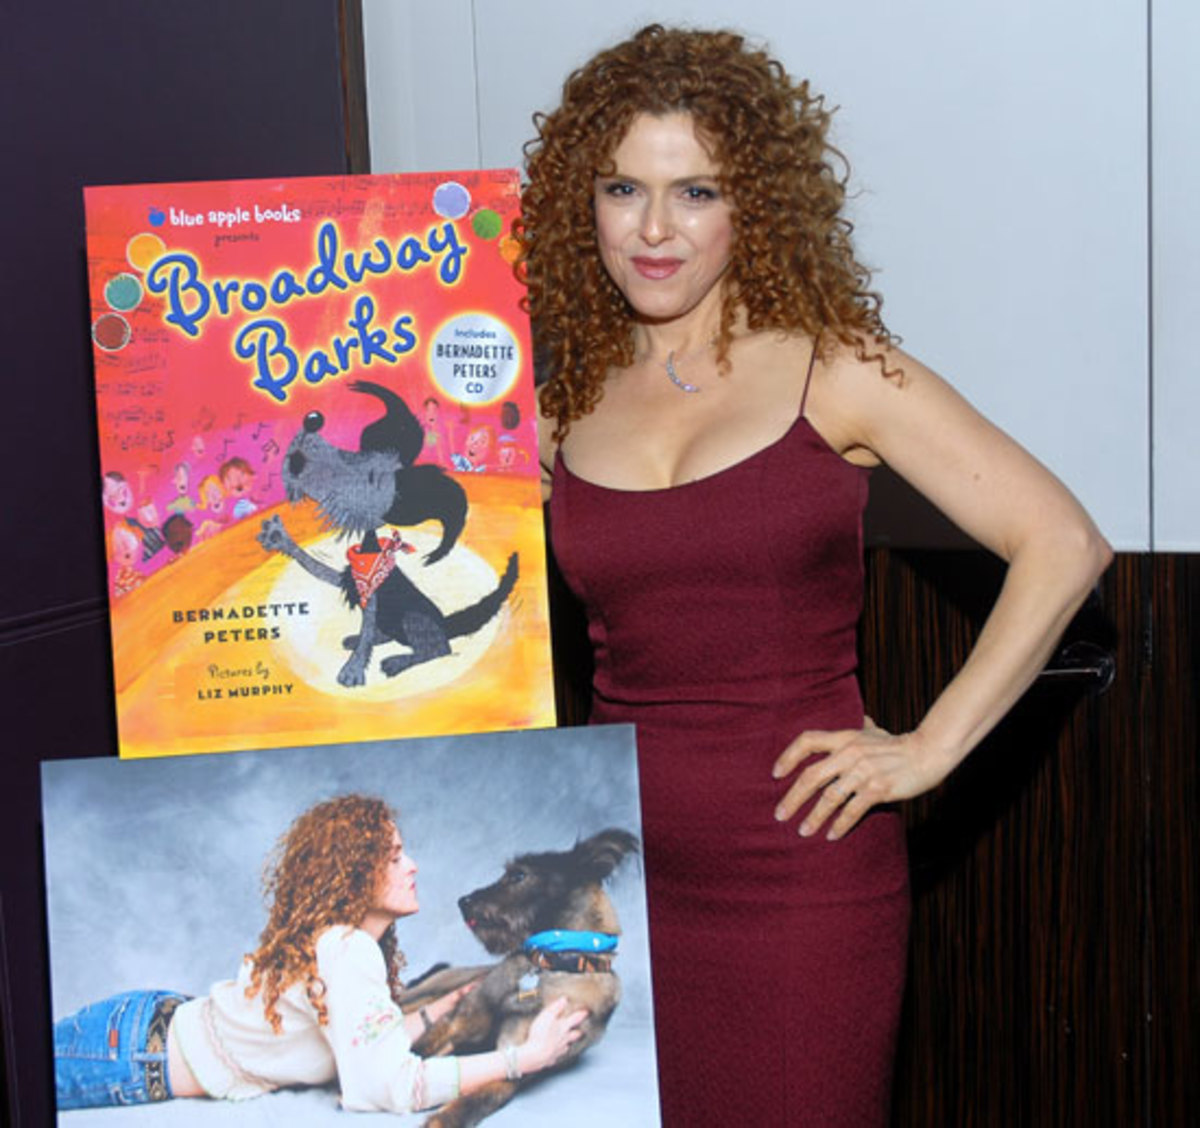 Bernadette Peters promoting her book